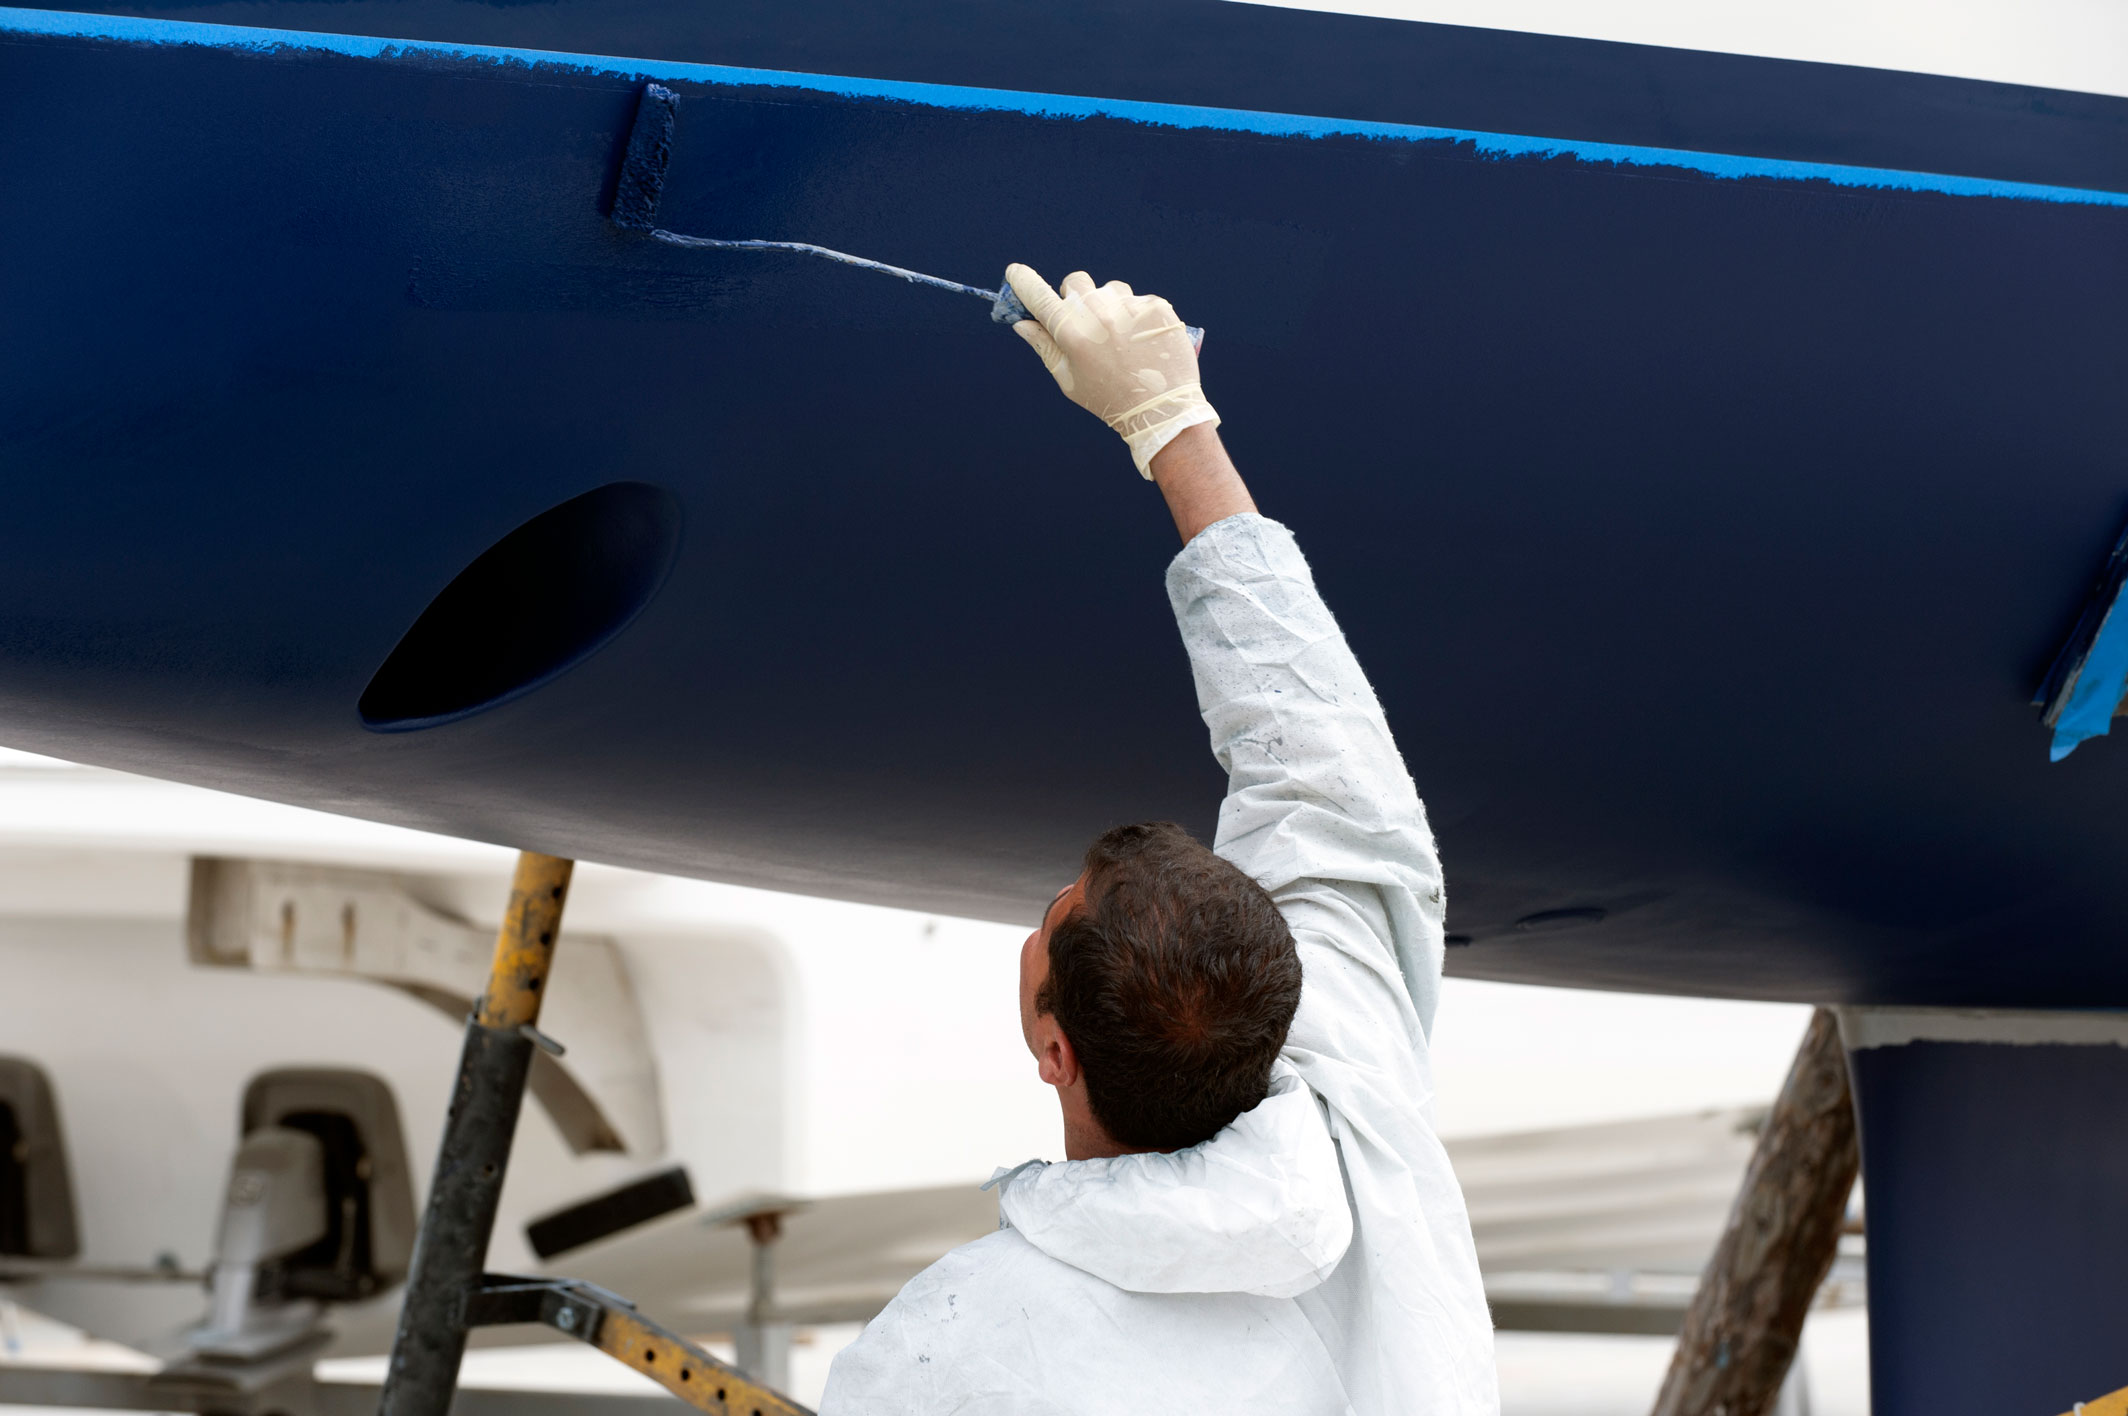 luxury yacht maintenance at the marina